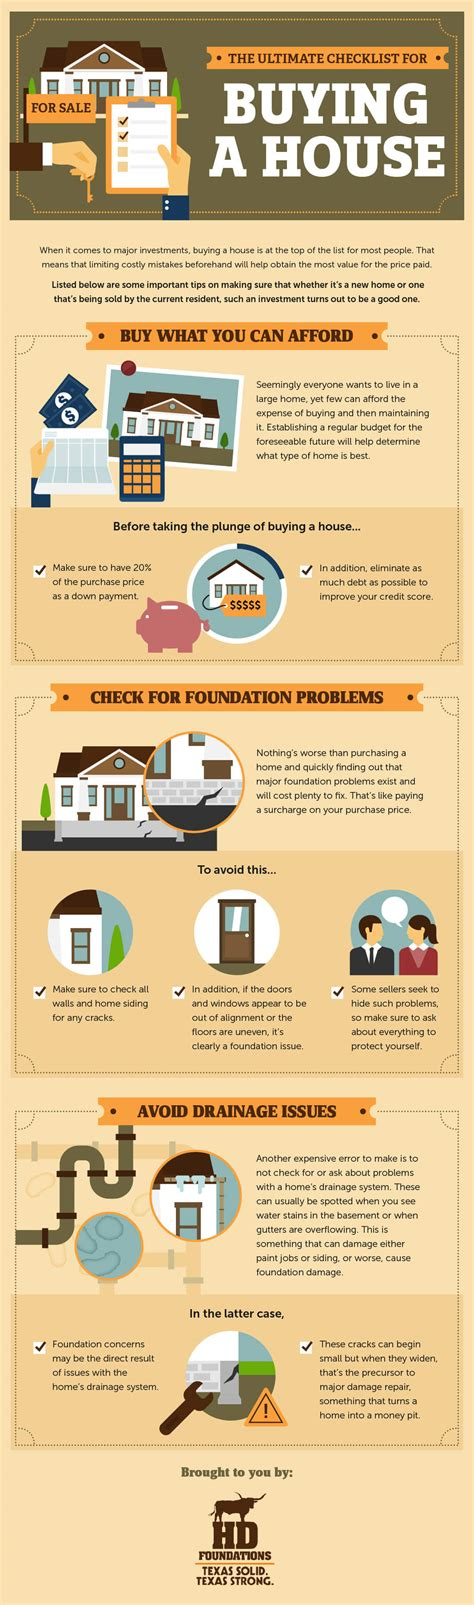 buying a house checklist the ultimate checklist for buying a house infographic